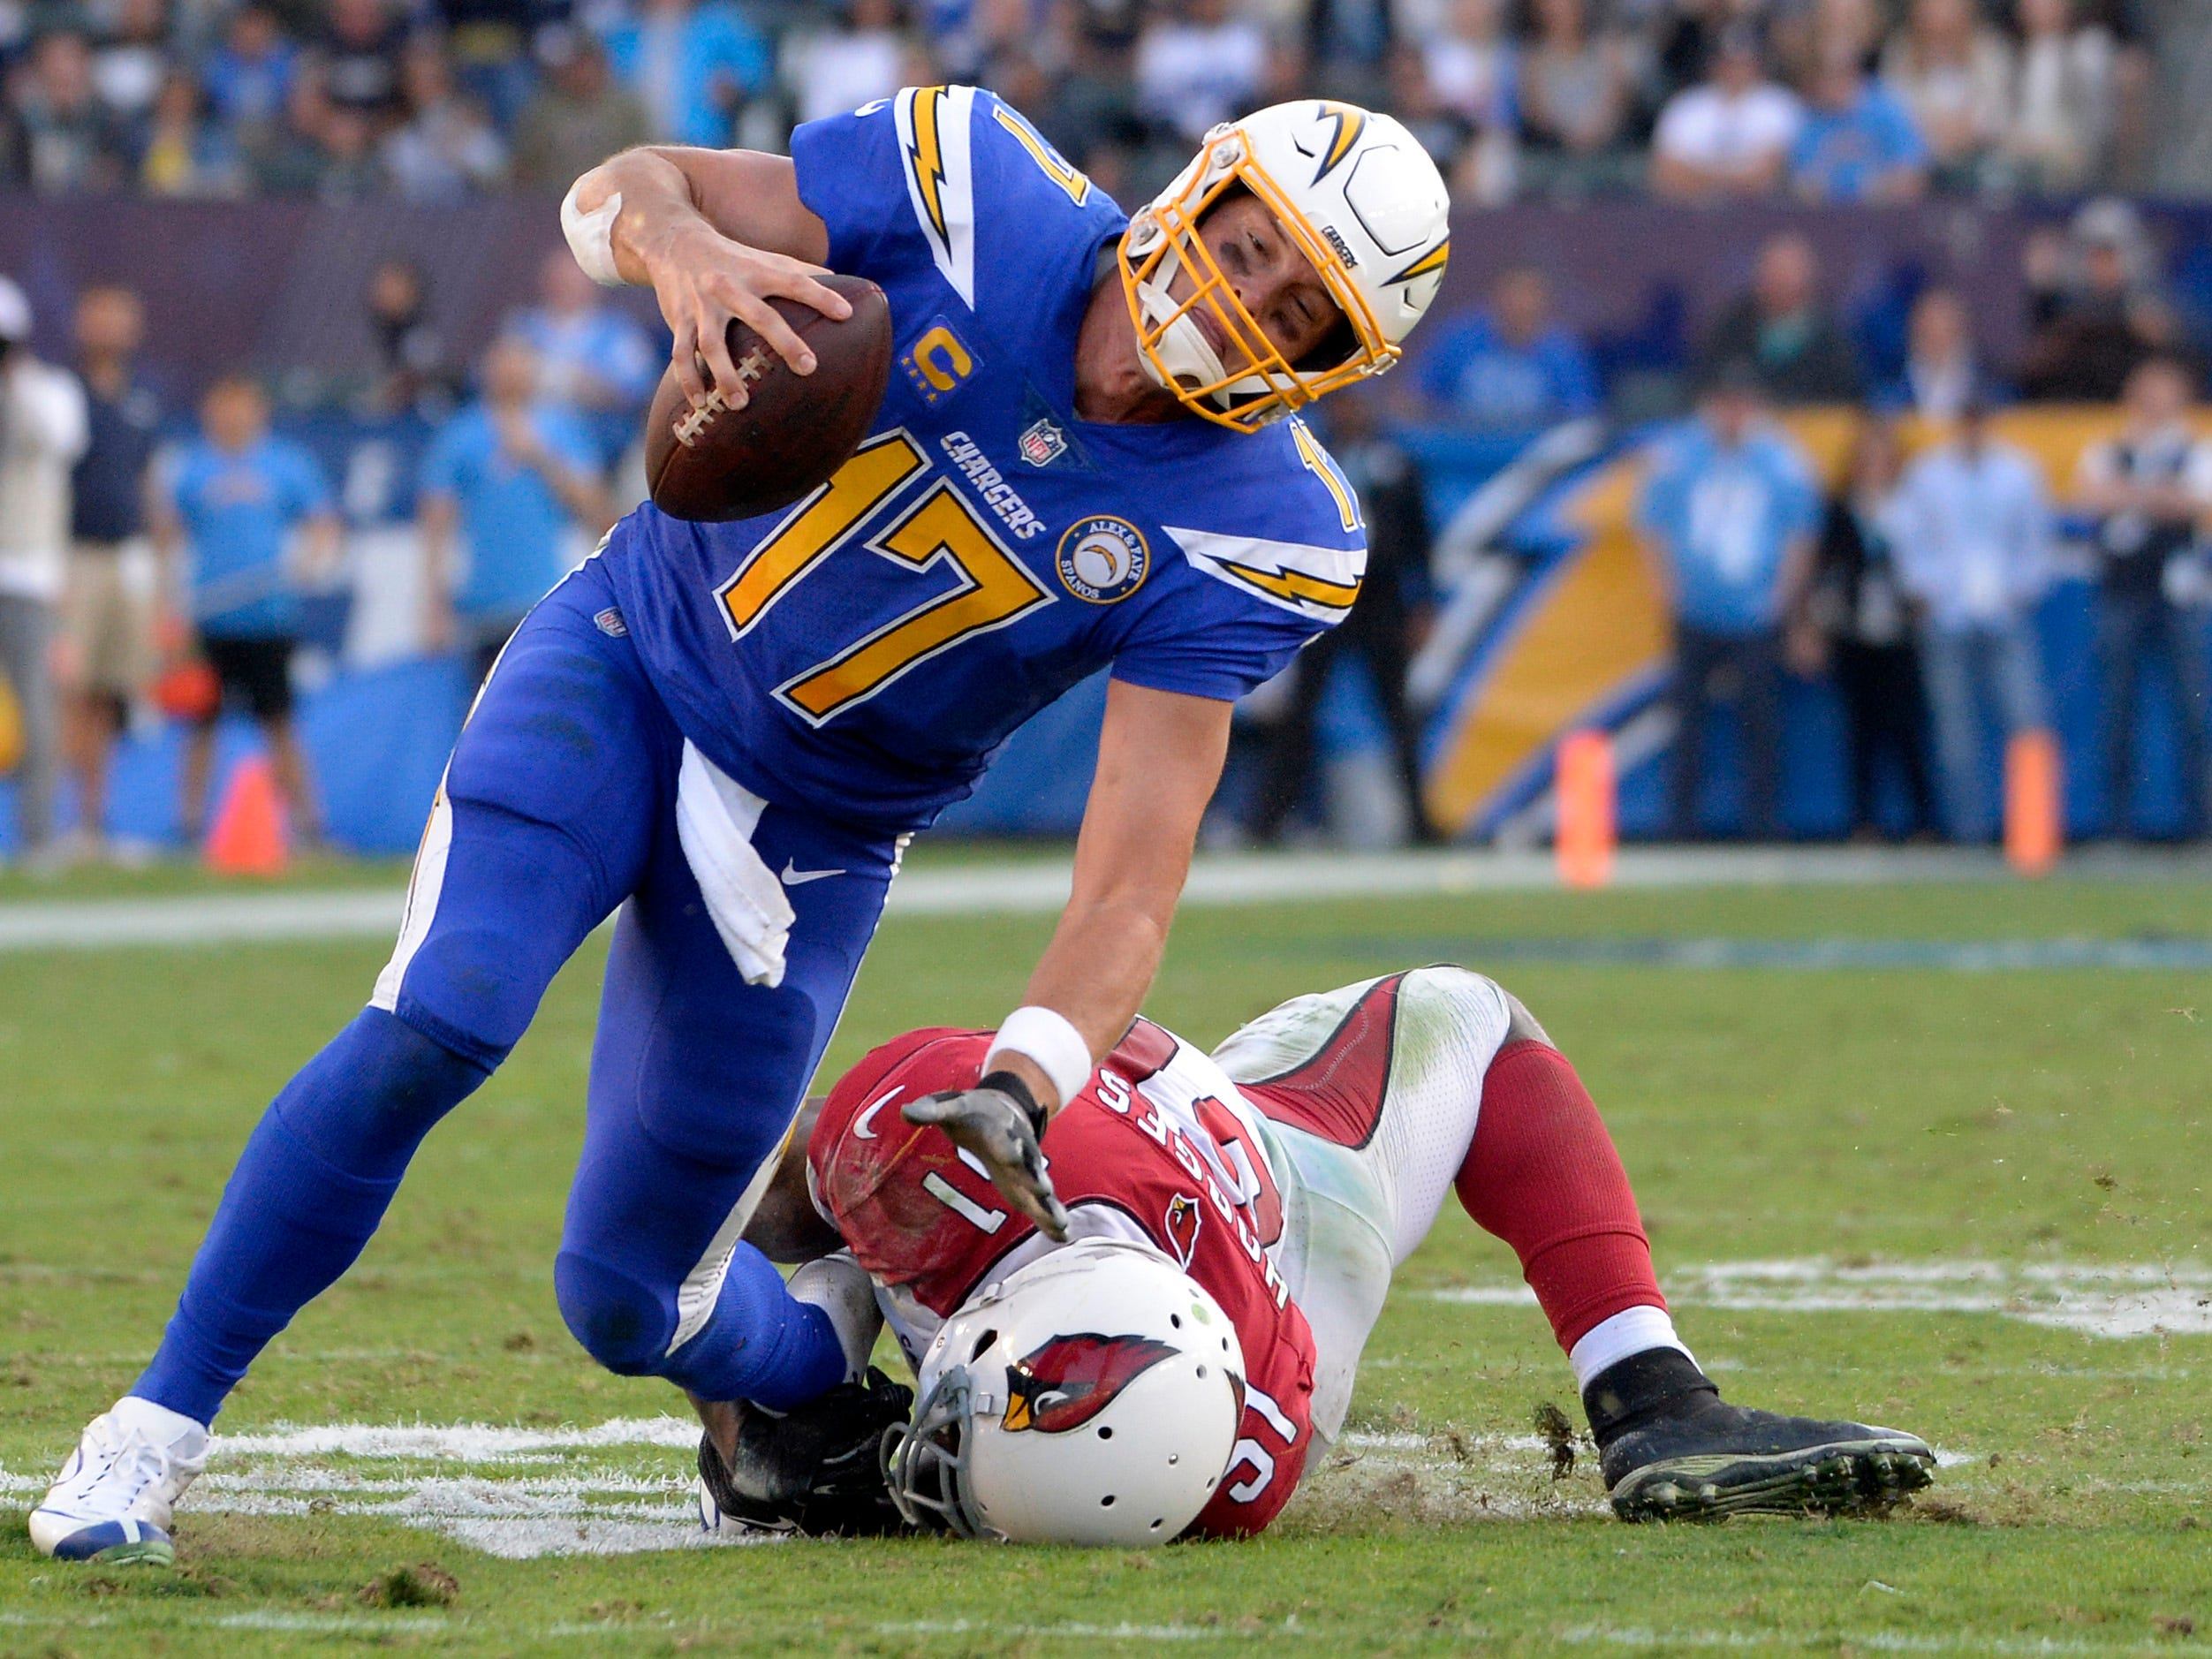 Nov 25, 2018; Carson, CA, USA; Los Angeles Chargers quarterback Philip Rivers (17) is tackled by Arizona Cardinals linebacker Gerald Hodges (51) during the third quarter at StubHub Center.